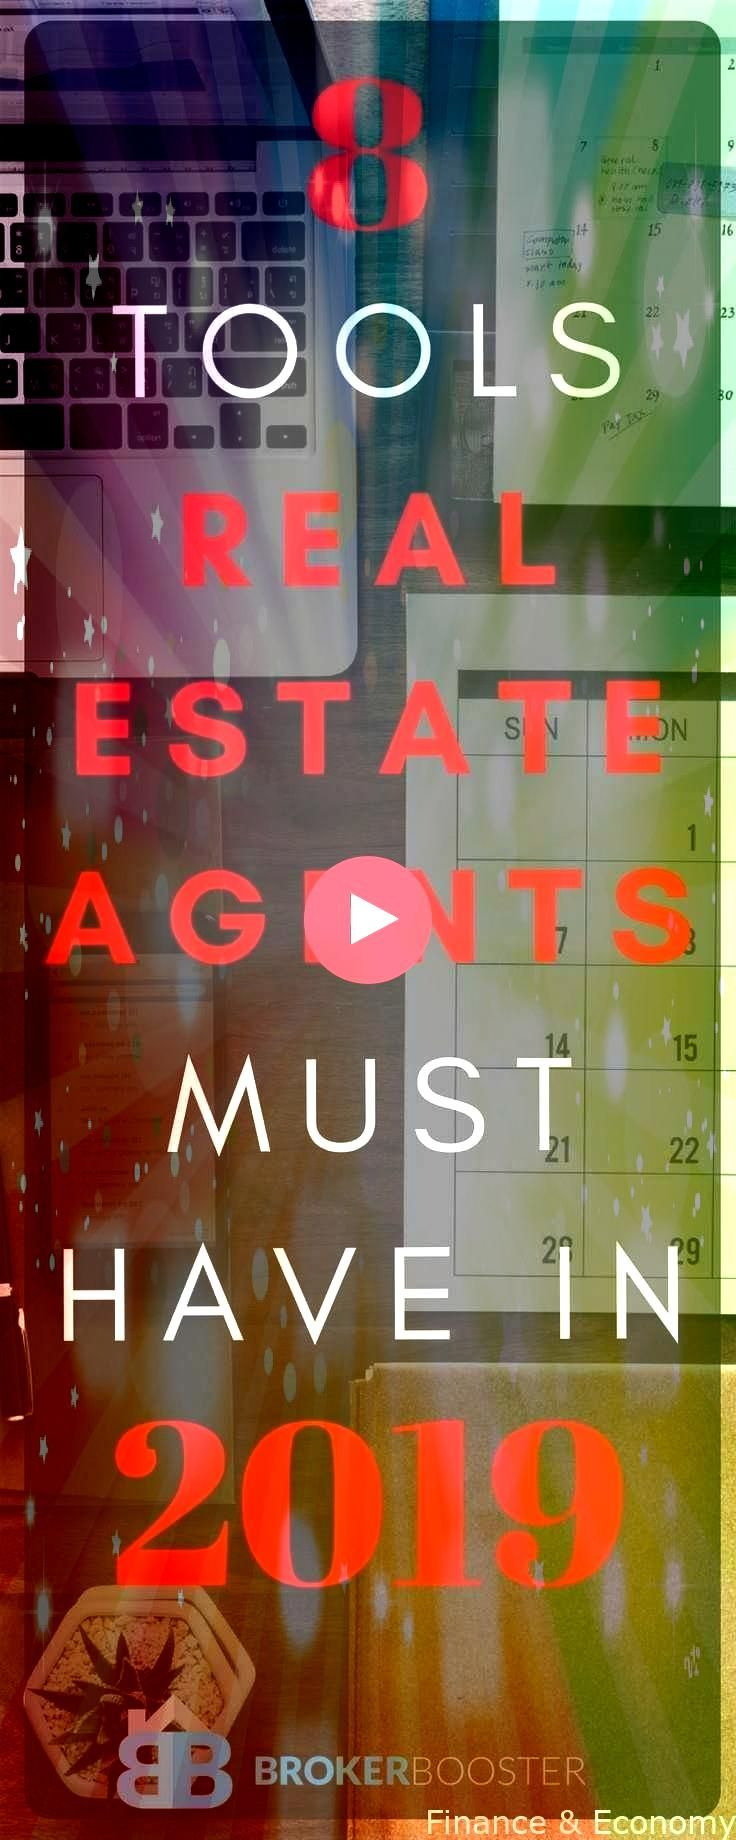 to be a successful real estate agent 8 Tools Real Estate Agents must Have Want to be a successful real estate agent 8 Tools Real Estate Agents must Have  Want to be a suc...